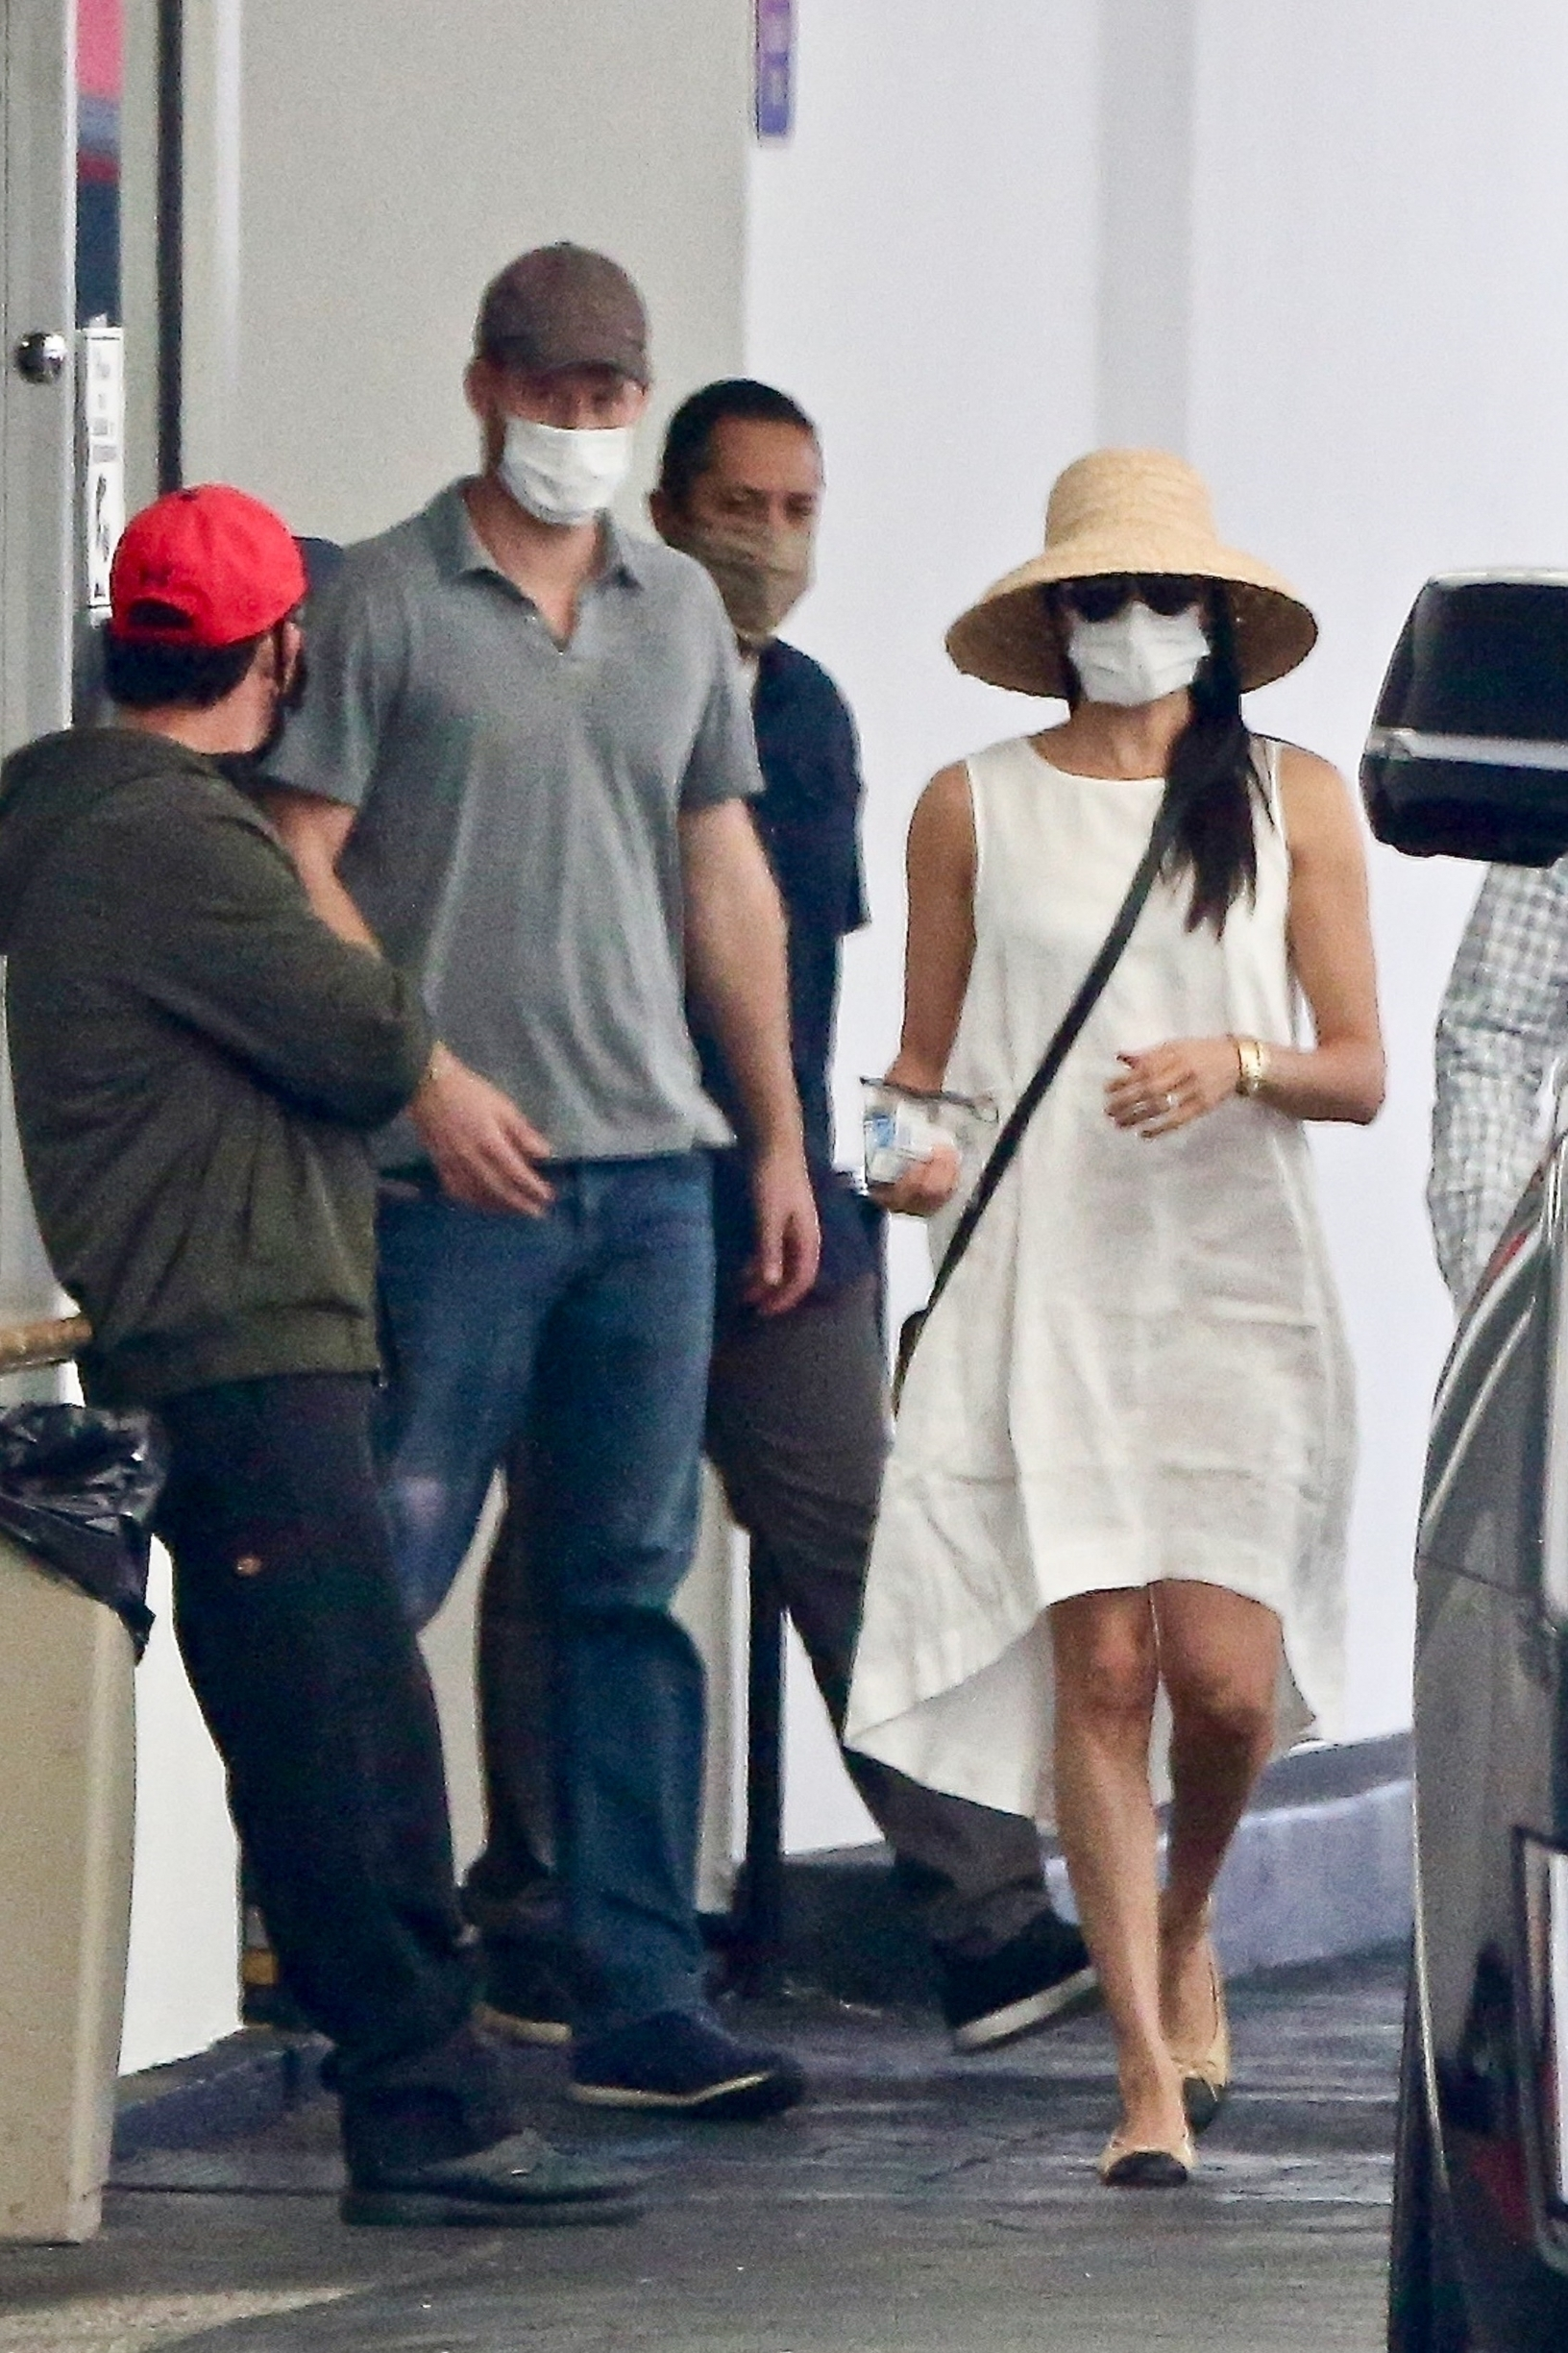 Beverly Hills, CA  - *PREMIUM-EXCLUSIVE* **WEB EMBARGO UNTIL 5PM EDT on July 12, 2020**  - Meghan Markle and Prince Harry are seen leaving an appointment in Beverly Hills on Friday afternoon. Meghan, dressed in a white linen dress with ballet flats, sunglasses and a straw sunhat was seen leaving the building on a very hot day and closely guarded by security who opened her car door for her. Harry, in jeans and a grey polo shirt and cap walked behind her and made his way to the other side of the large SUV not followed as closely by their security.  *Shot on July 10, 2020*  *UK Clients - Pictures Containing Children Please Pixelate Face Prior To Publication*,Image: 542162175, License: Rights-managed, Restrictions: RIGHTS: WORLDWIDE EXCEPT IN UNITED KINGDOM, Model Release: no, Credit line: Javiles/Bruce / BACKGRID / Backgrid USA / Profimedia